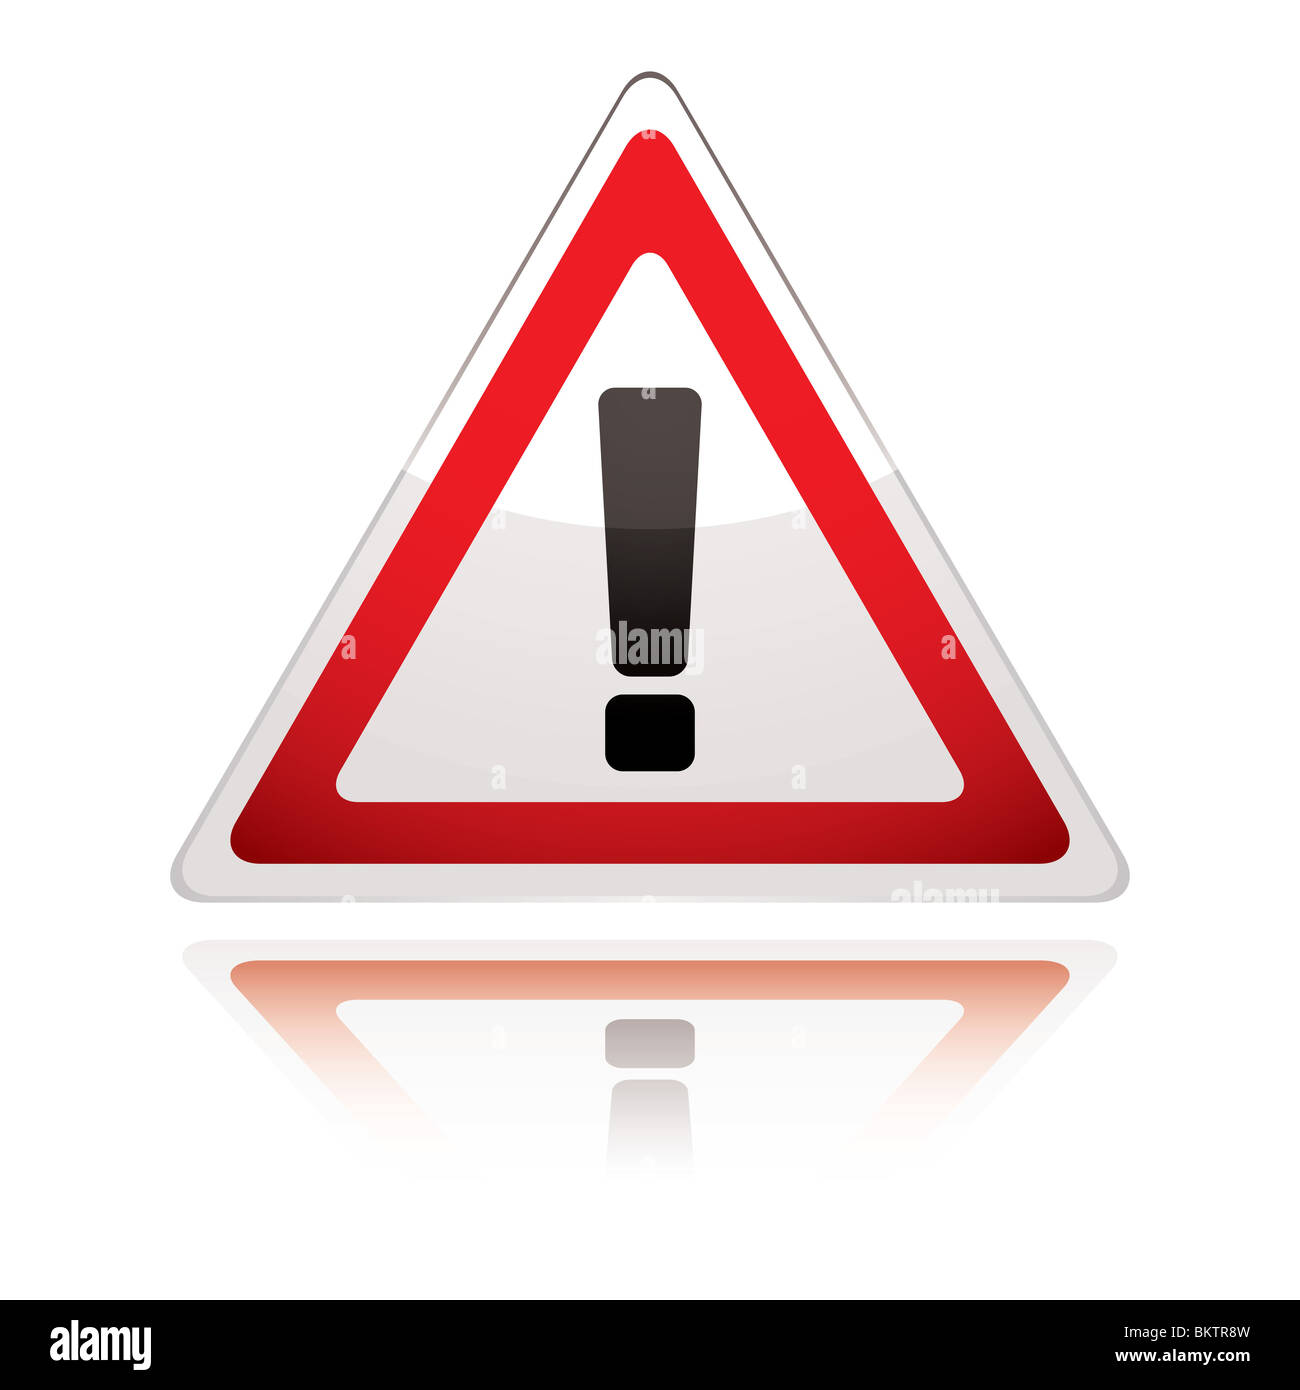 UK warning sign icon with exclamation with reflection - Stock Image